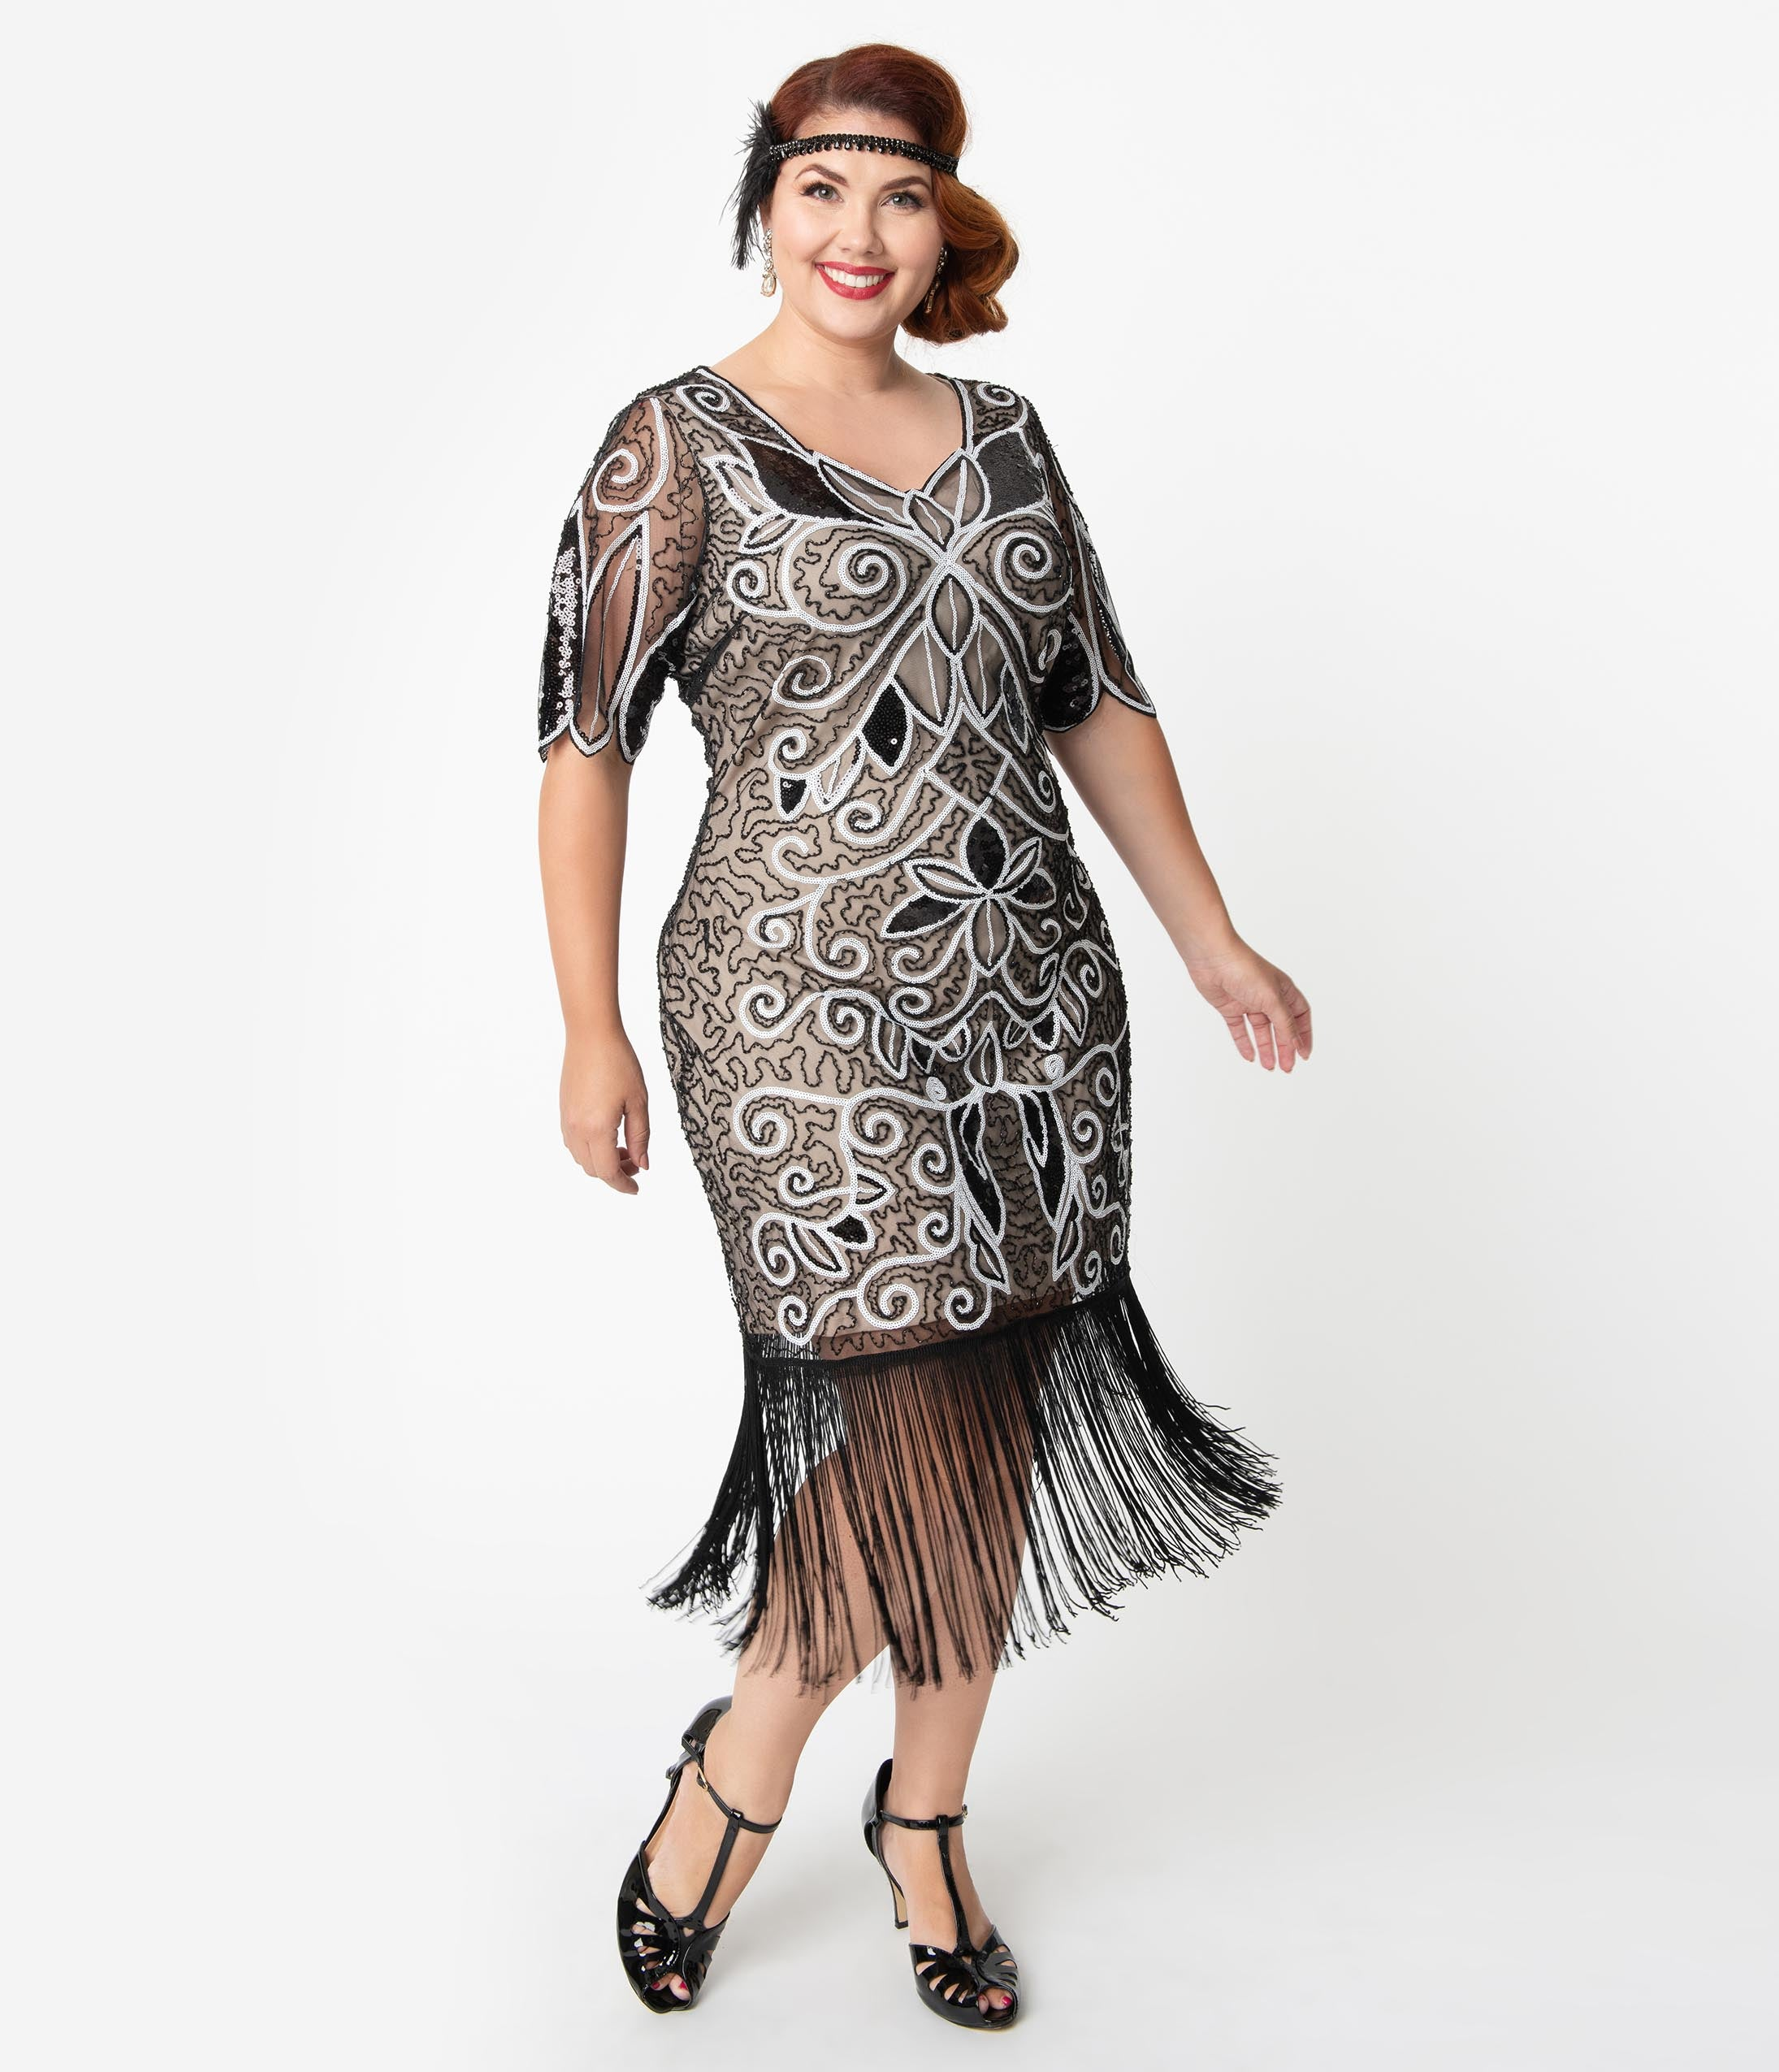 1920s Plus Size Flapper Dresses, Gatsby Dresses, Flapper Costumes Unique Vintage Plus Size 1920S Style Black  White Sequin Florent Flapper Dress $98.00 AT vintagedancer.com